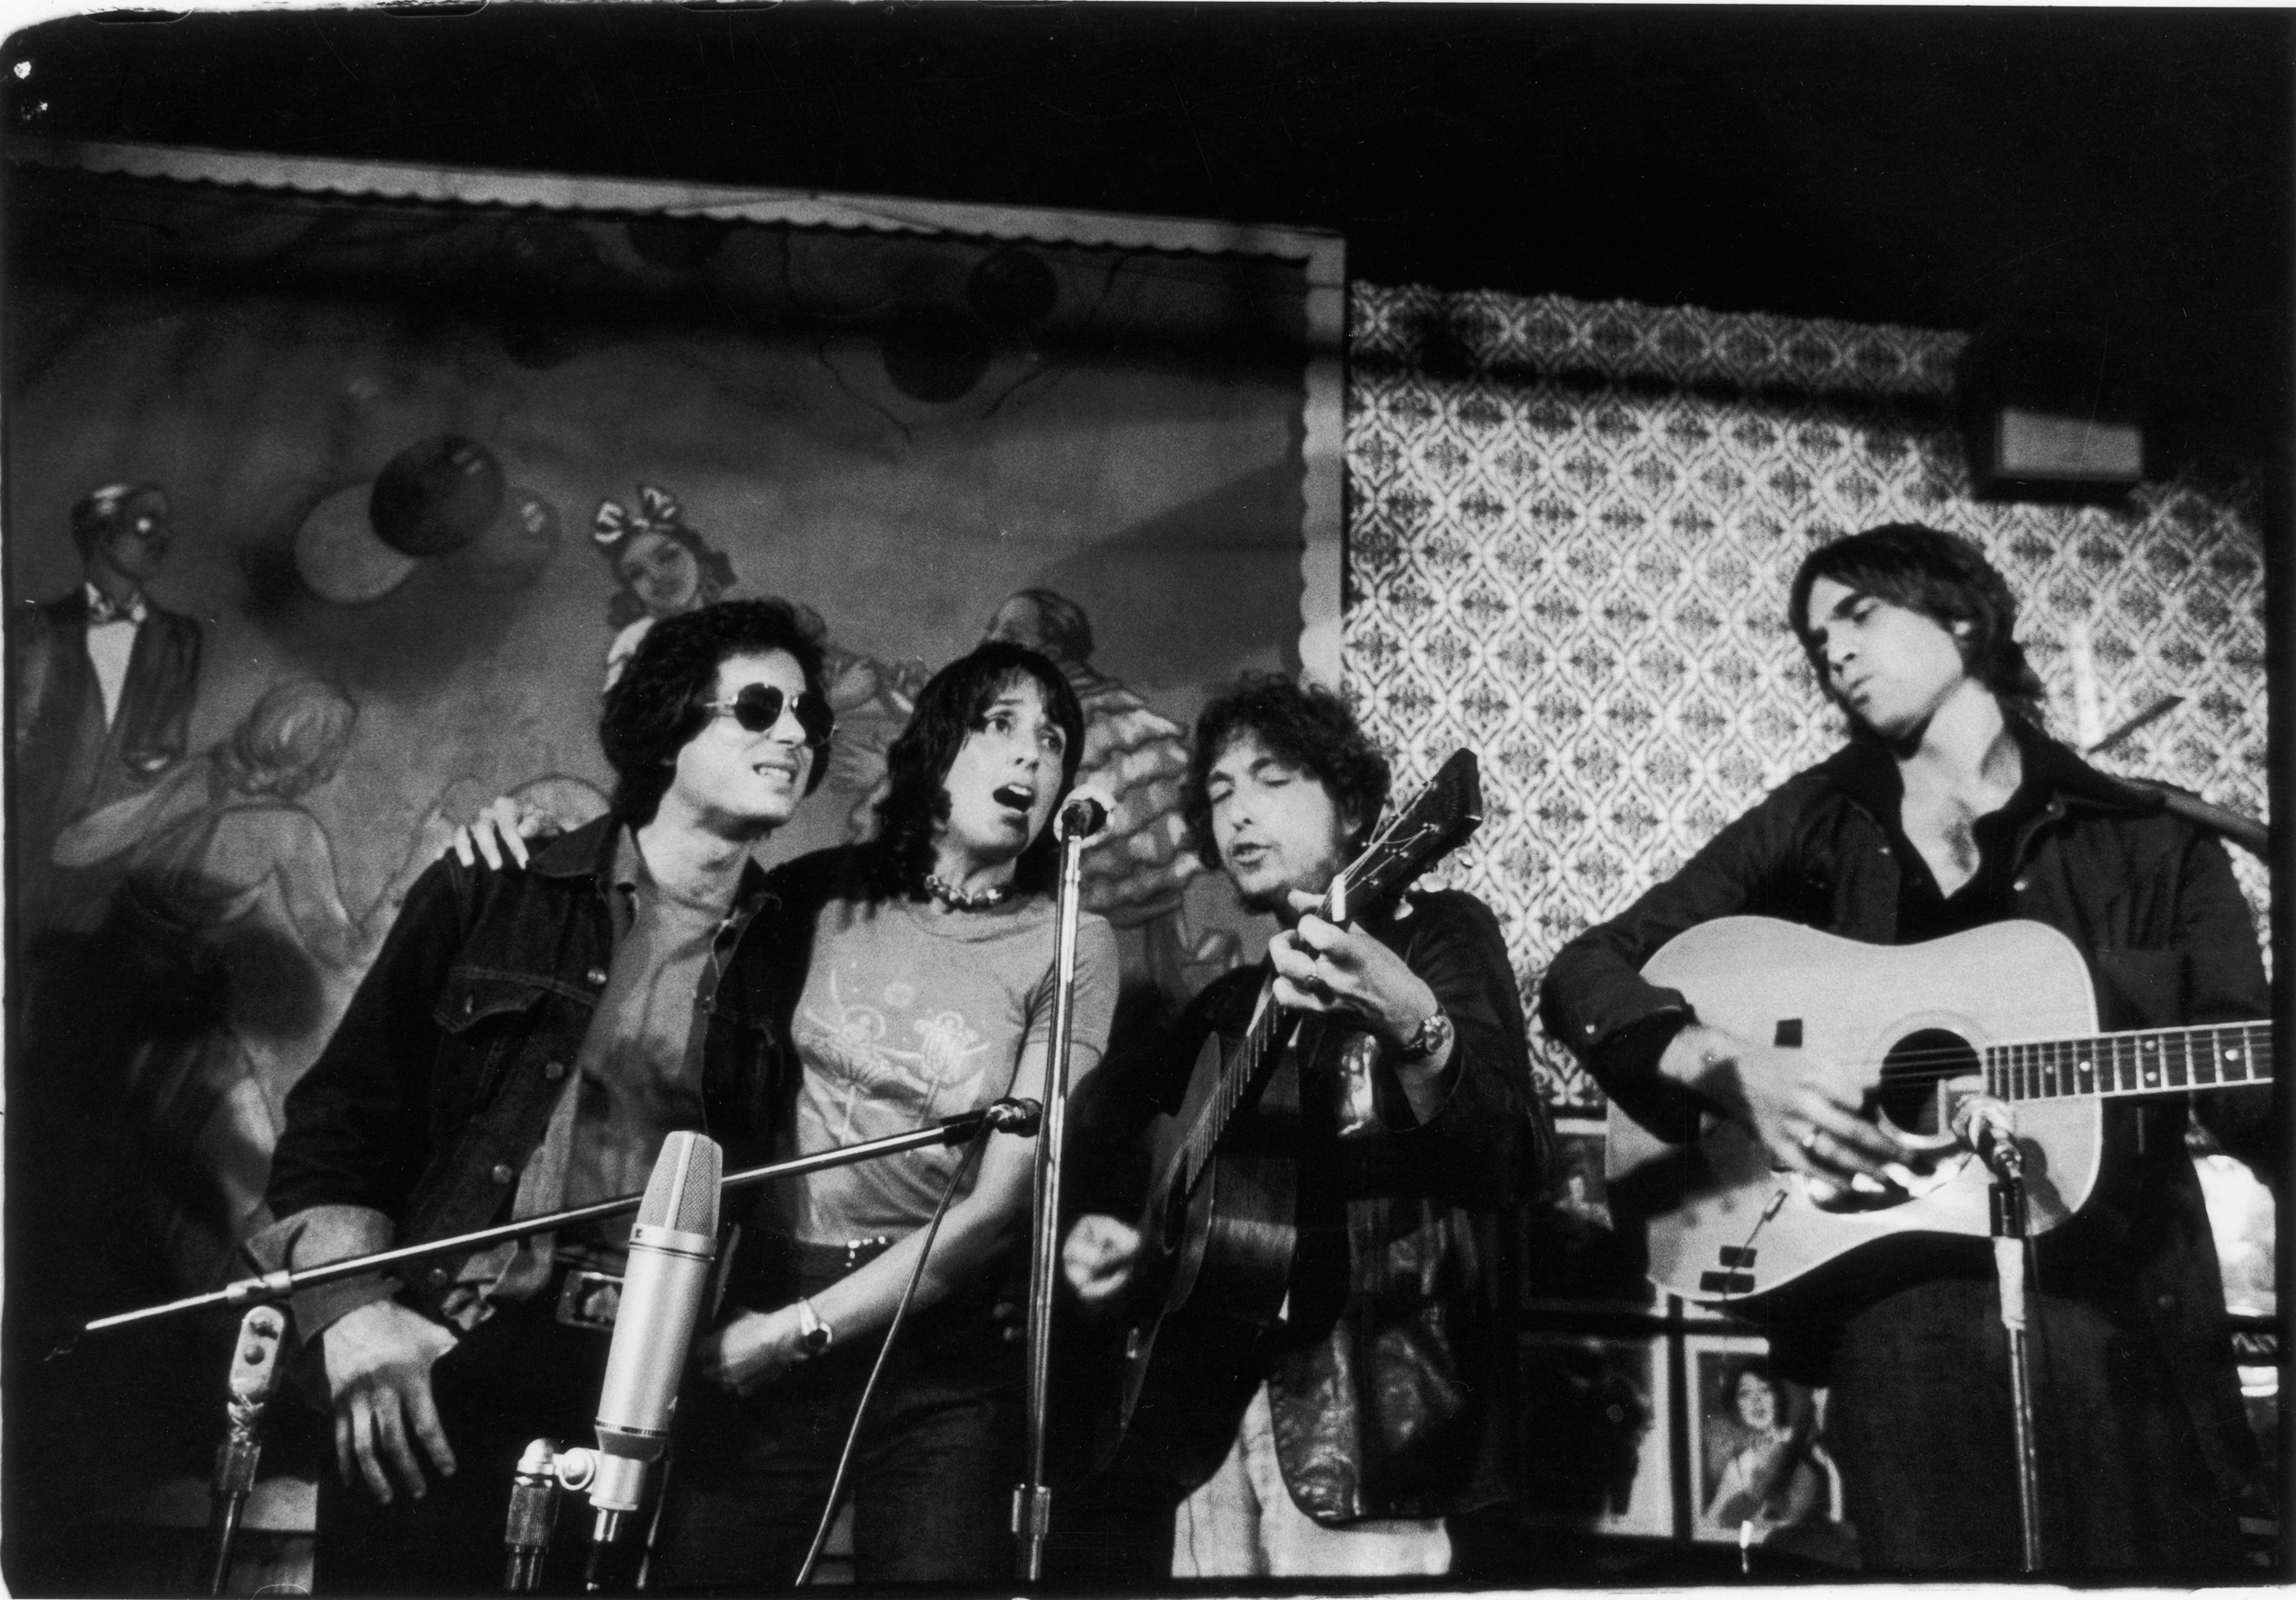 Rob Stoner, Joan Baez, Bob Dylan and Eric Anderson on stage at Gerde's Folk City, 130 West 3rd Street, October 23, 1975. Playing in honor of club owner Mike Porco's 61st birthday, the performance was also a dry run for Dylan's Rolling Thunder Revue tour, which began a week later. Photo © Estate of Fred W. McDarrah.